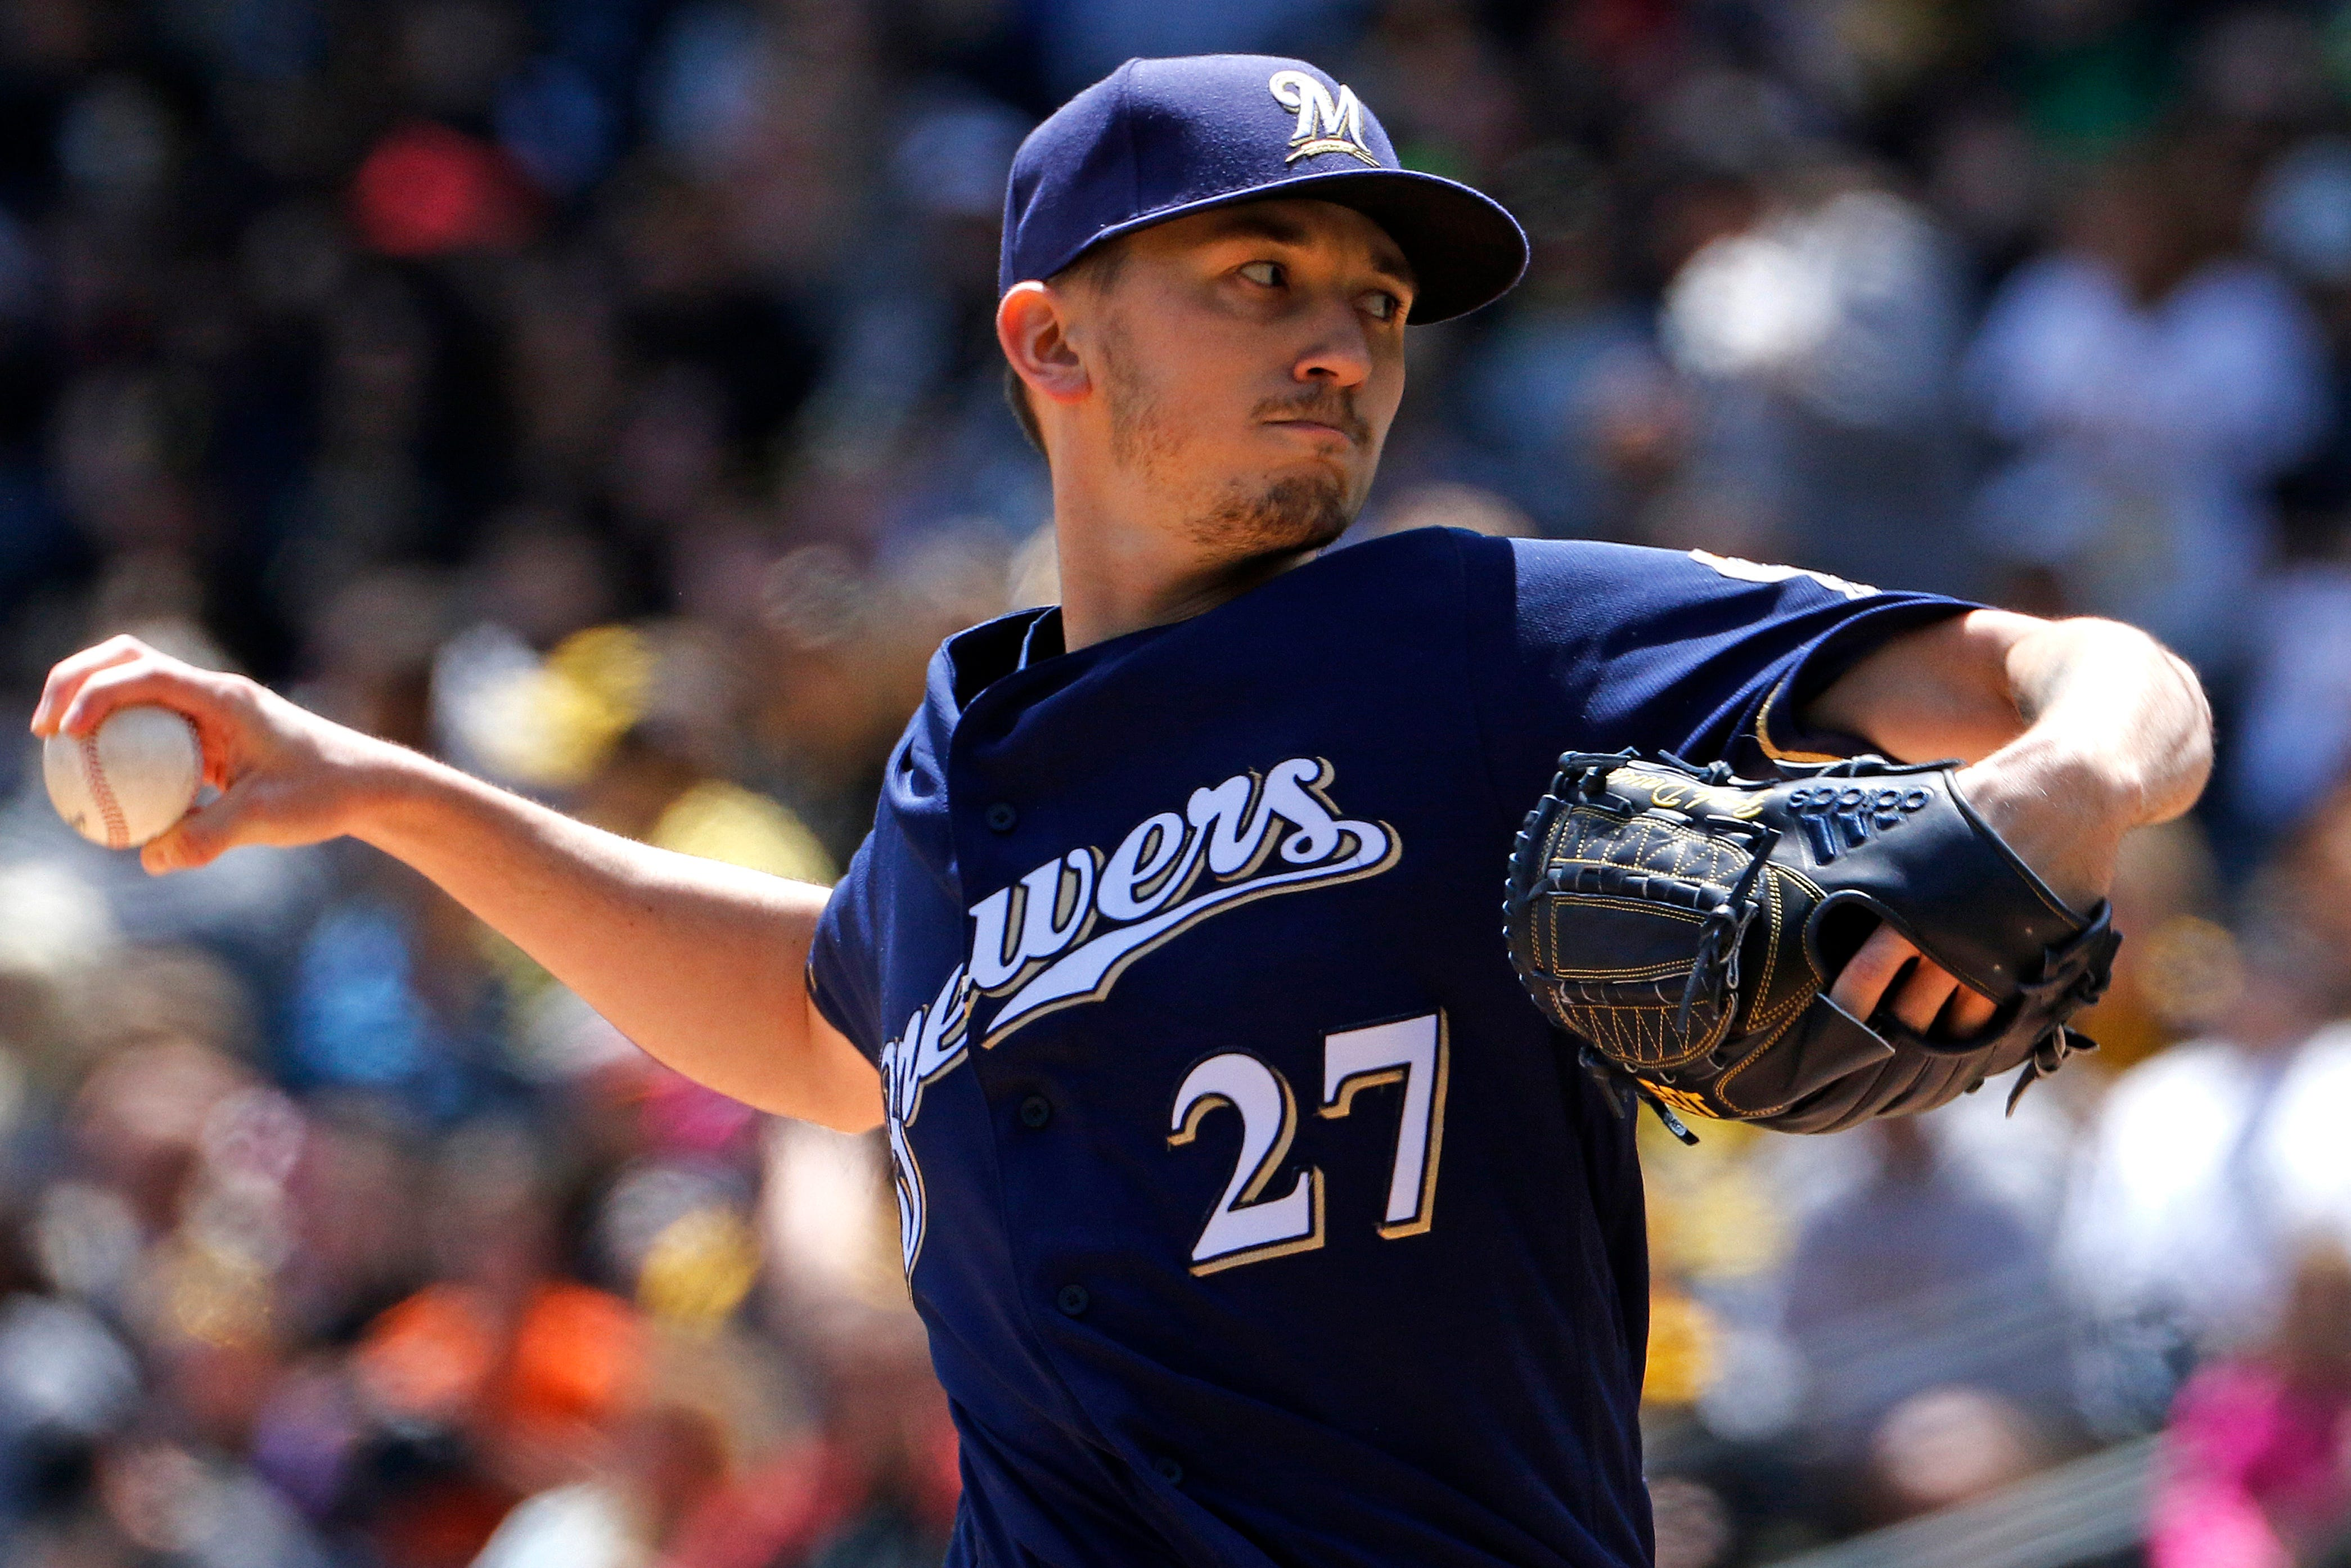 Davies looks to extend his winning streak and put an end to Brewers' three-game skid